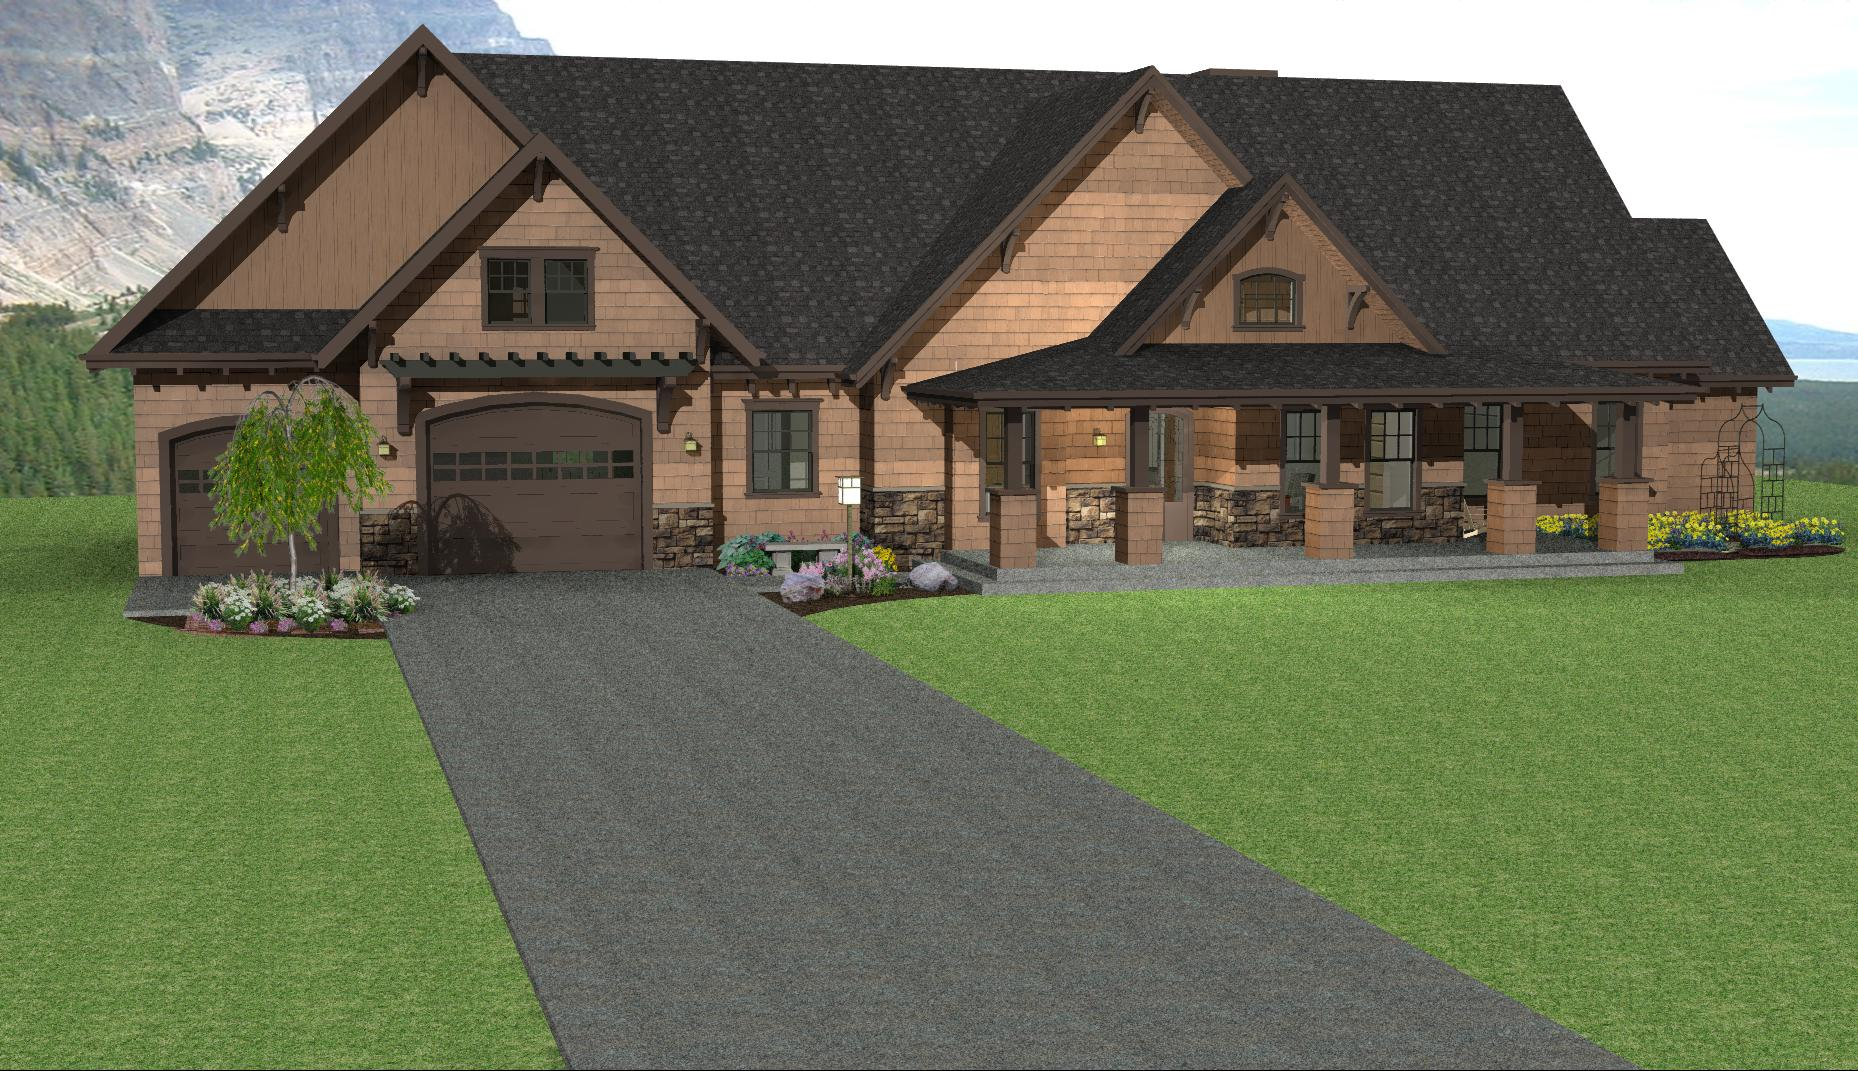 Ranch style home designs find house plans for Ranch style farmhouse plans